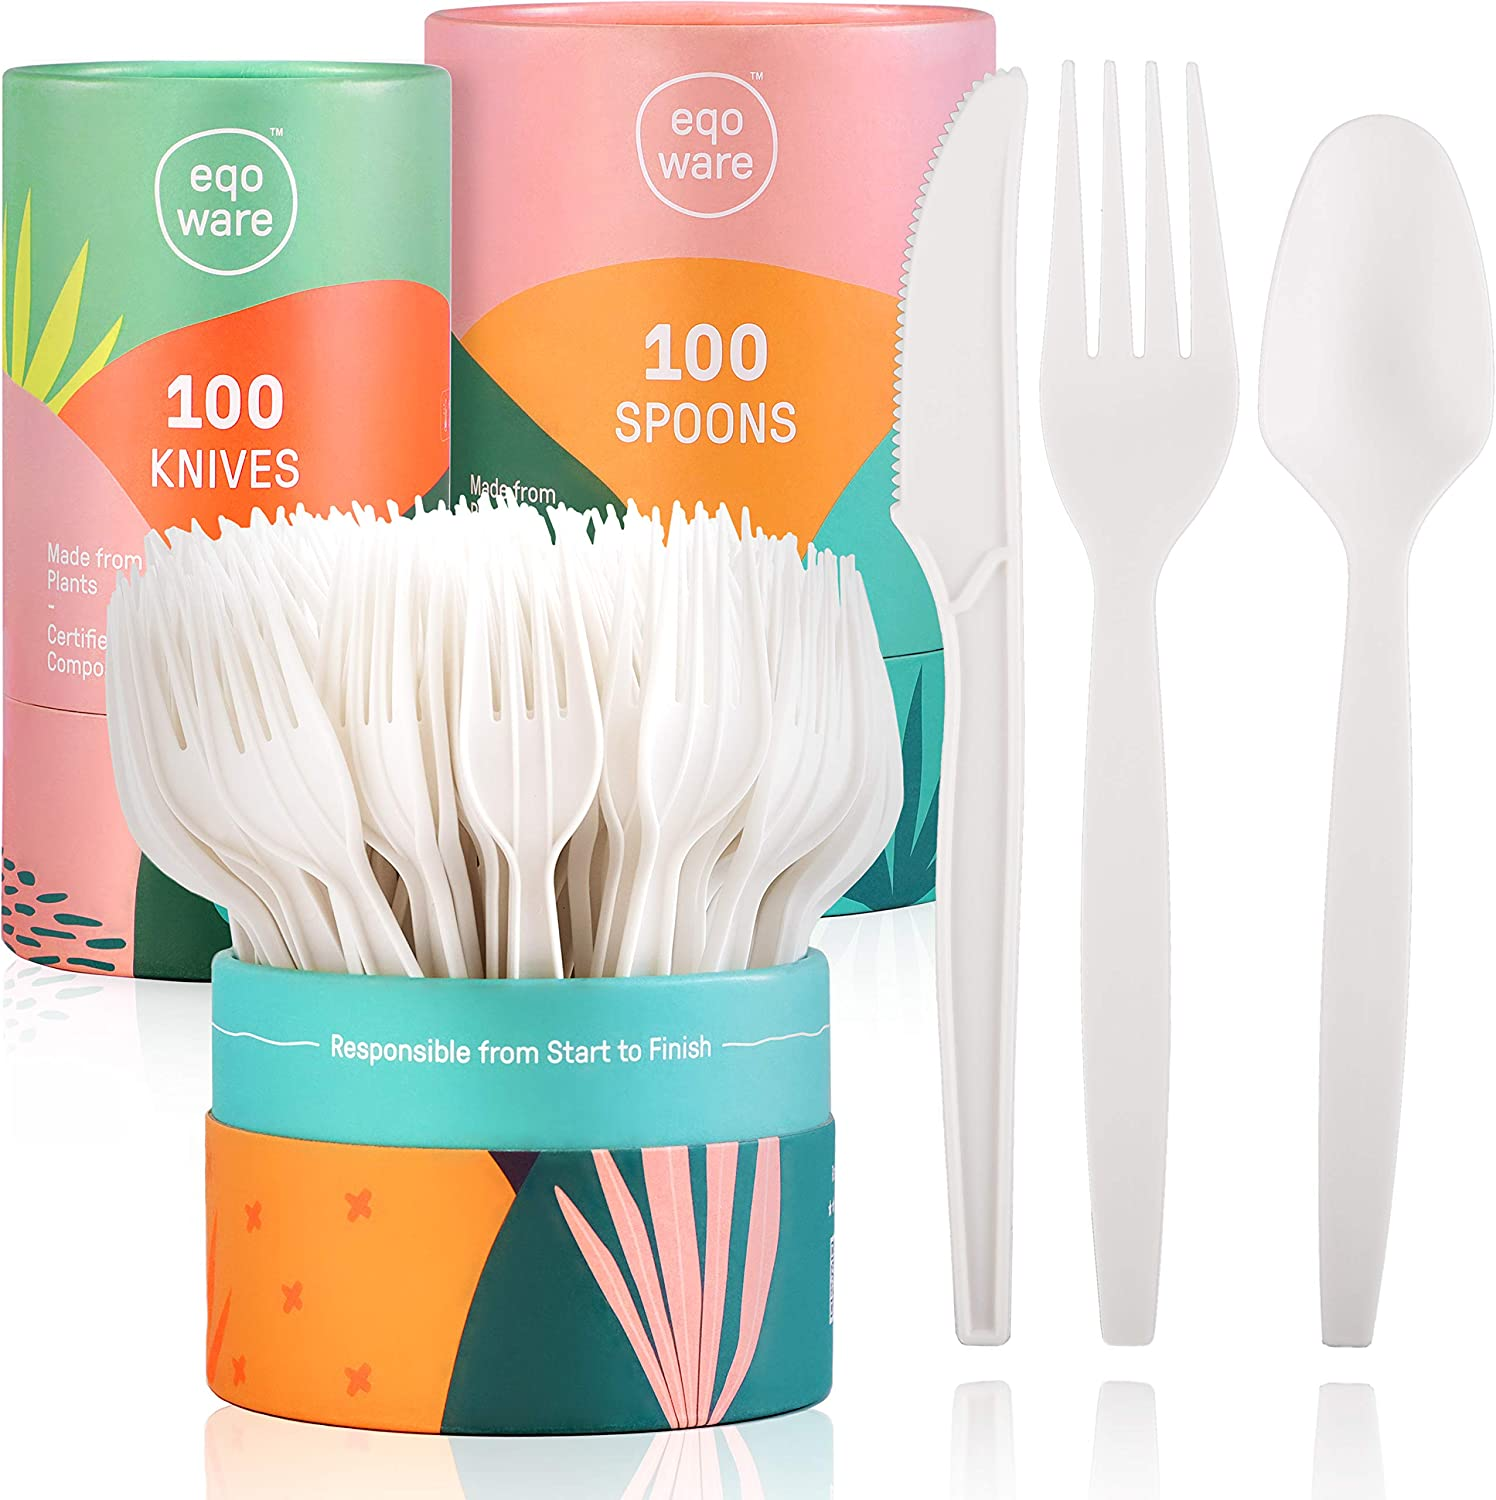 """eqoware Certified Compostable Cutlery Made from Plants   300 Pack   7"""" Large, Sturdy & Heat Resistant   Convenient Serving & Storage Holder   Design-led Compostable Plastic Utensils for Home & Office"""